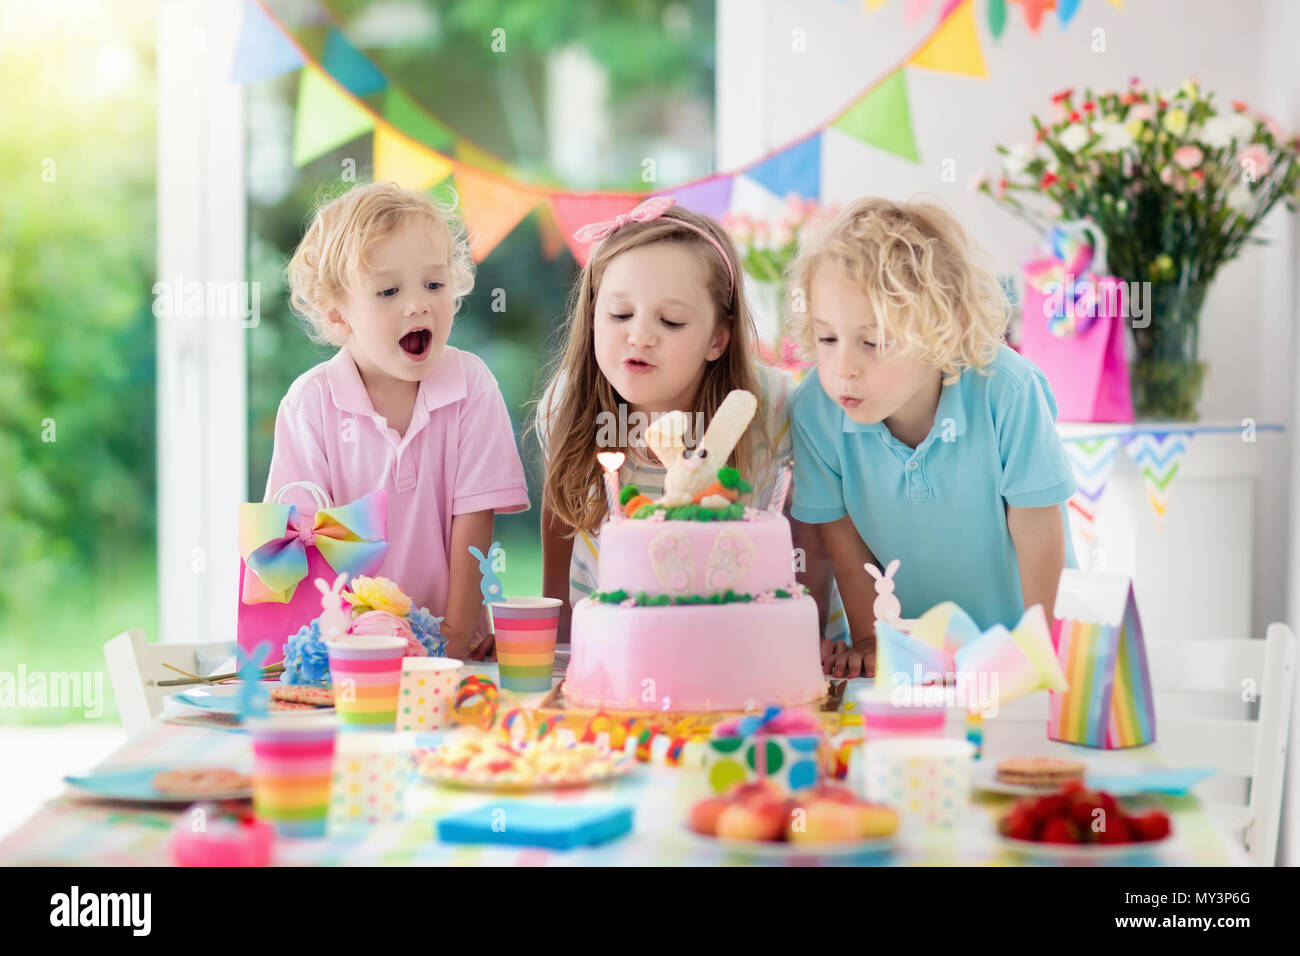 Kids Birthday Party Children Blow Out Candles On Pink Bunny Cake Pastel Rainbow Decoration And Table Setting For Event Banner Flag Girl A